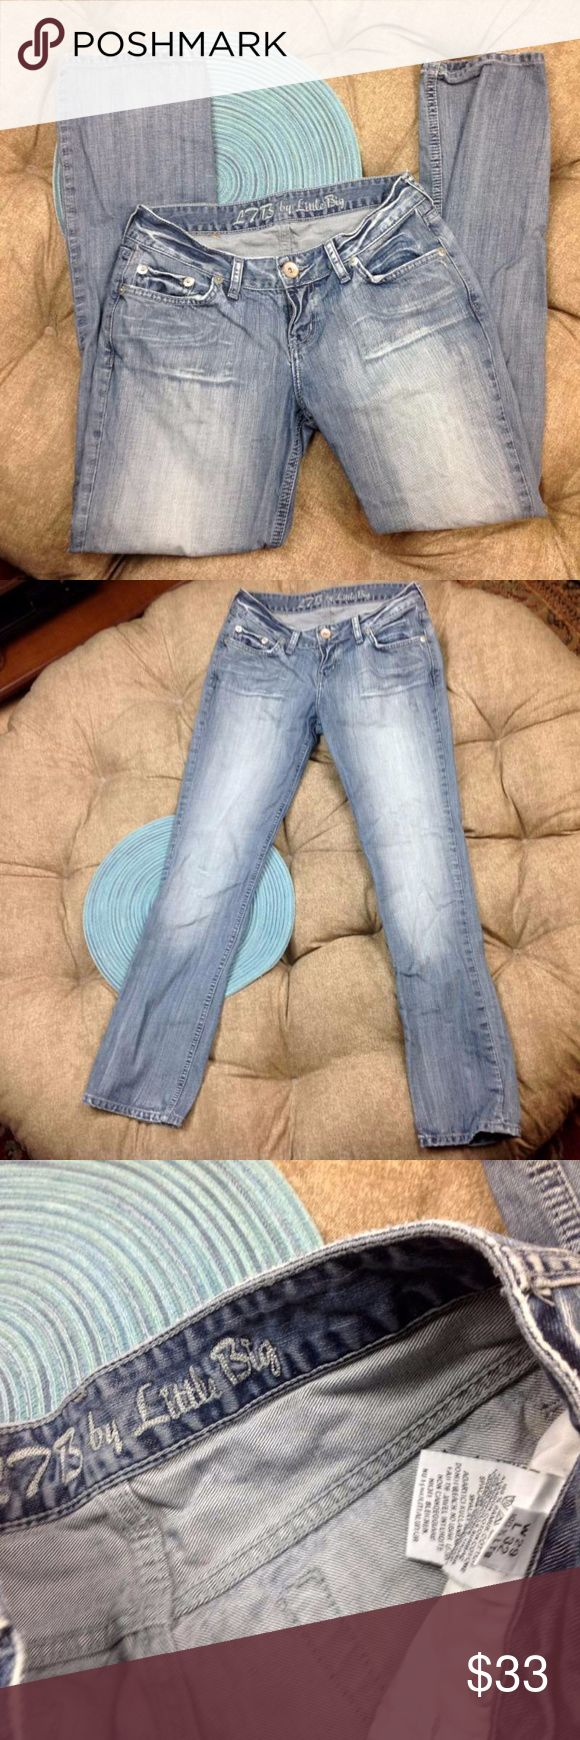 LTB Jeans 29X32 Distressed Skinny Cotton Great Condition; LTB Jeans 29X32 Distressed Skinny Medium Wash100% Cotton by Little Big 7.5 inch rise 15 inch across waist 32 inch inseam LTB Jeans Skinny